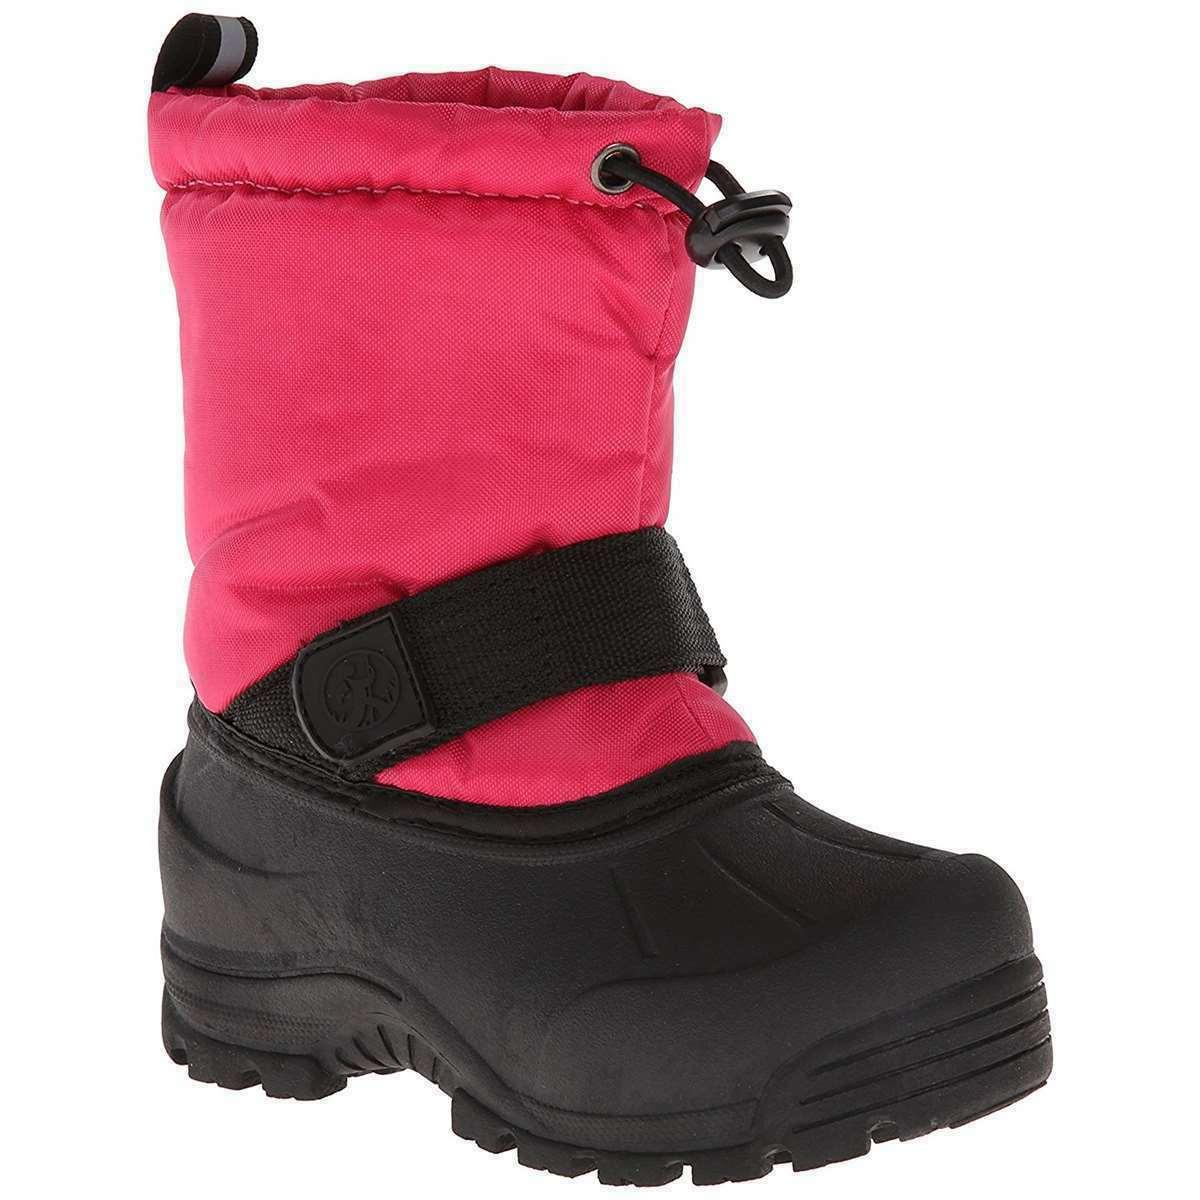 New Northside Kids Frosty Mid-Calf Snow Boots M